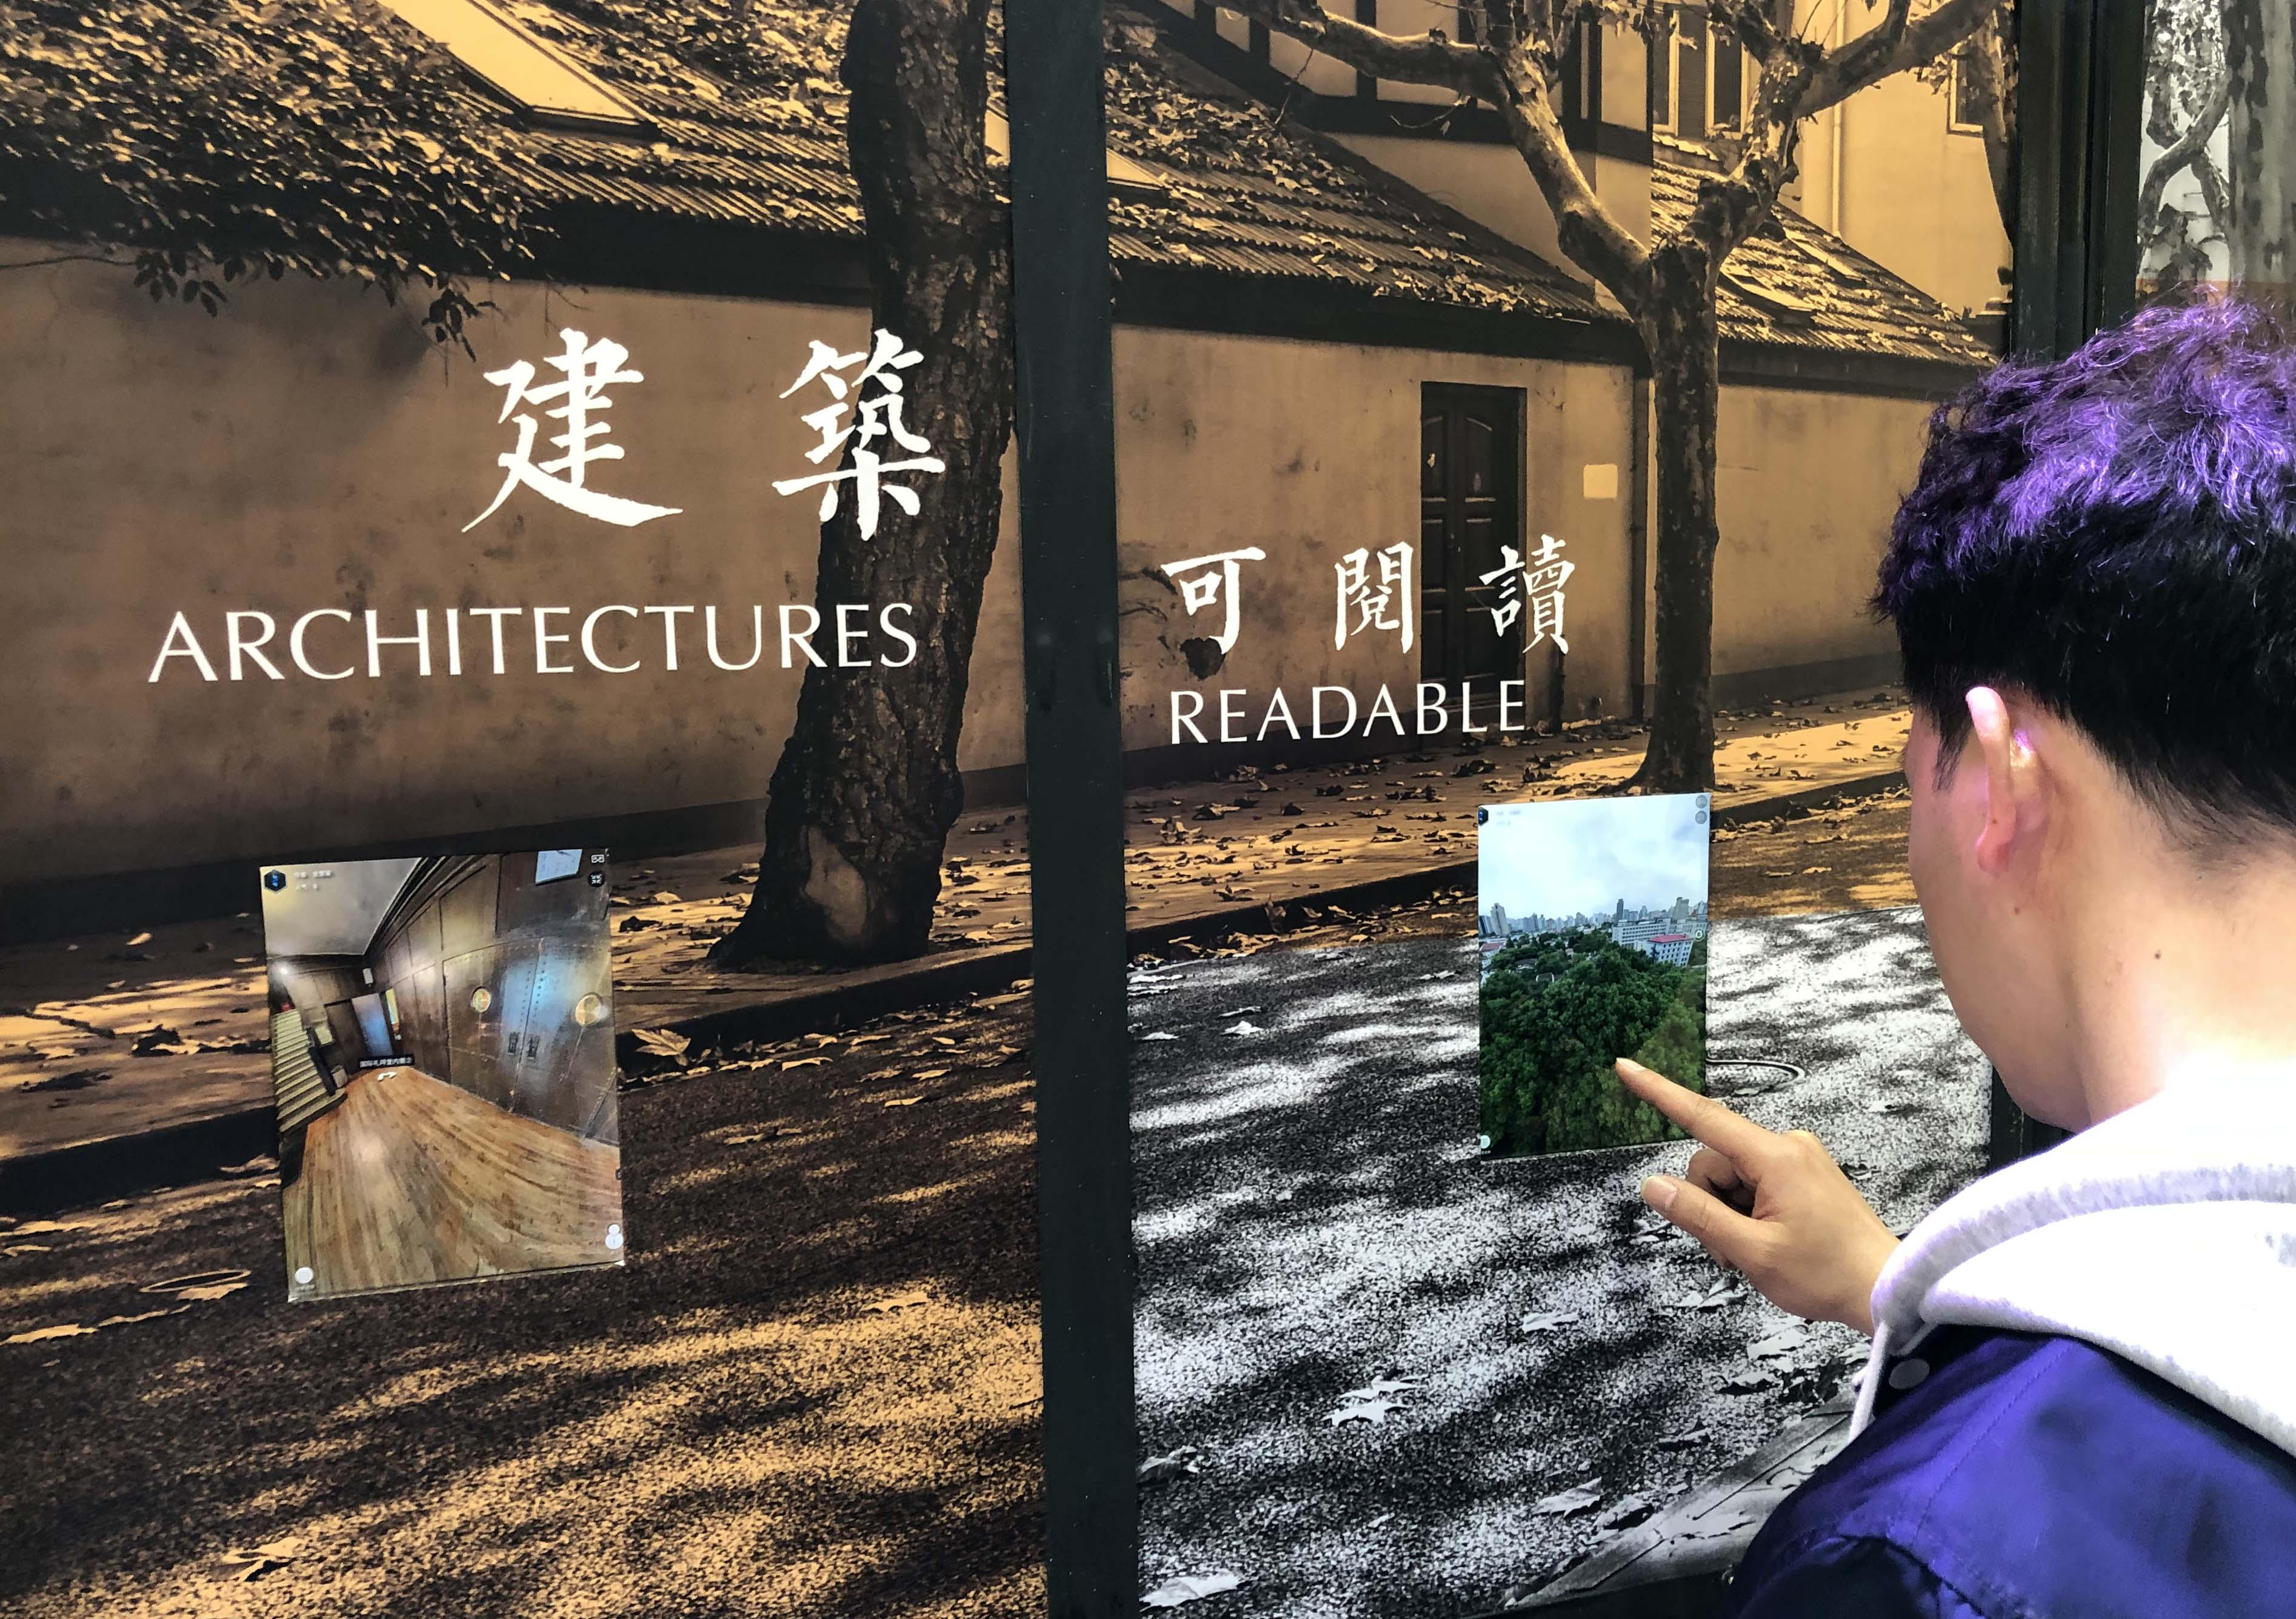 Old buildings in Shanghai come alive with technology - Xinhua | English.news.cn